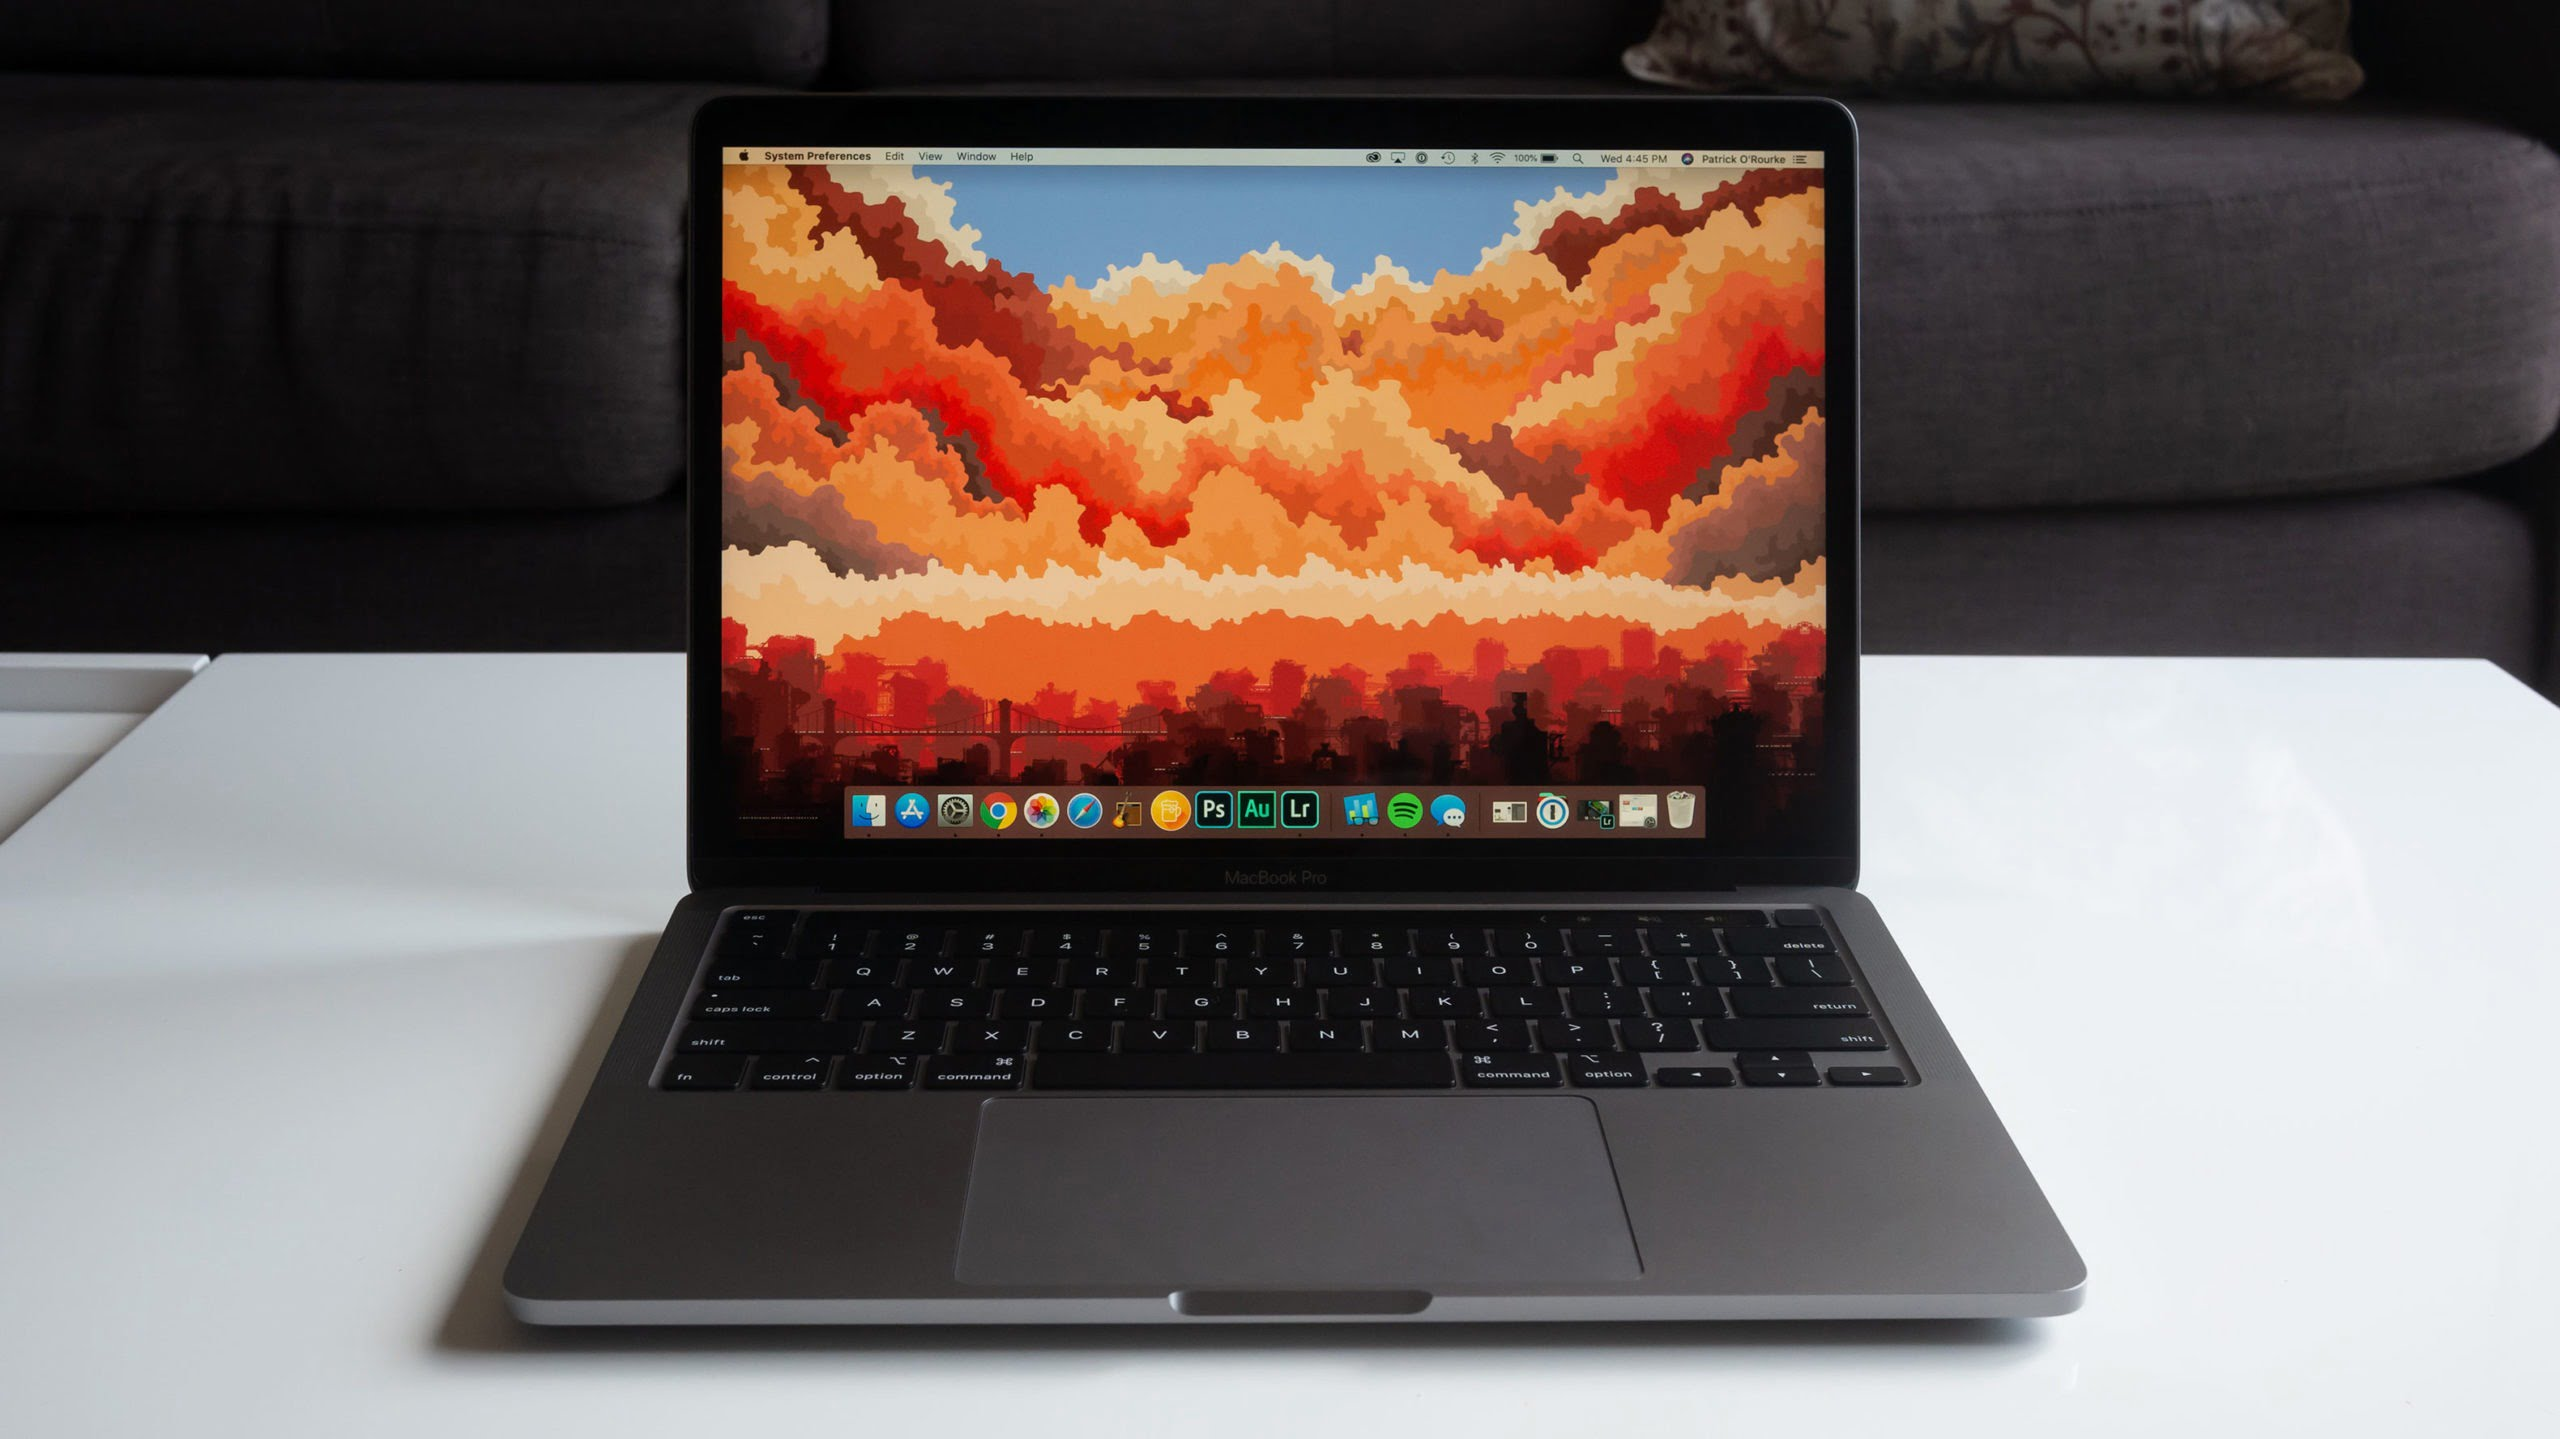 reviews,computers,review,apple,macbook pro,laptops,Apple 13 Inch MacBook Pro,gizmogyaan, gizmo gyaan